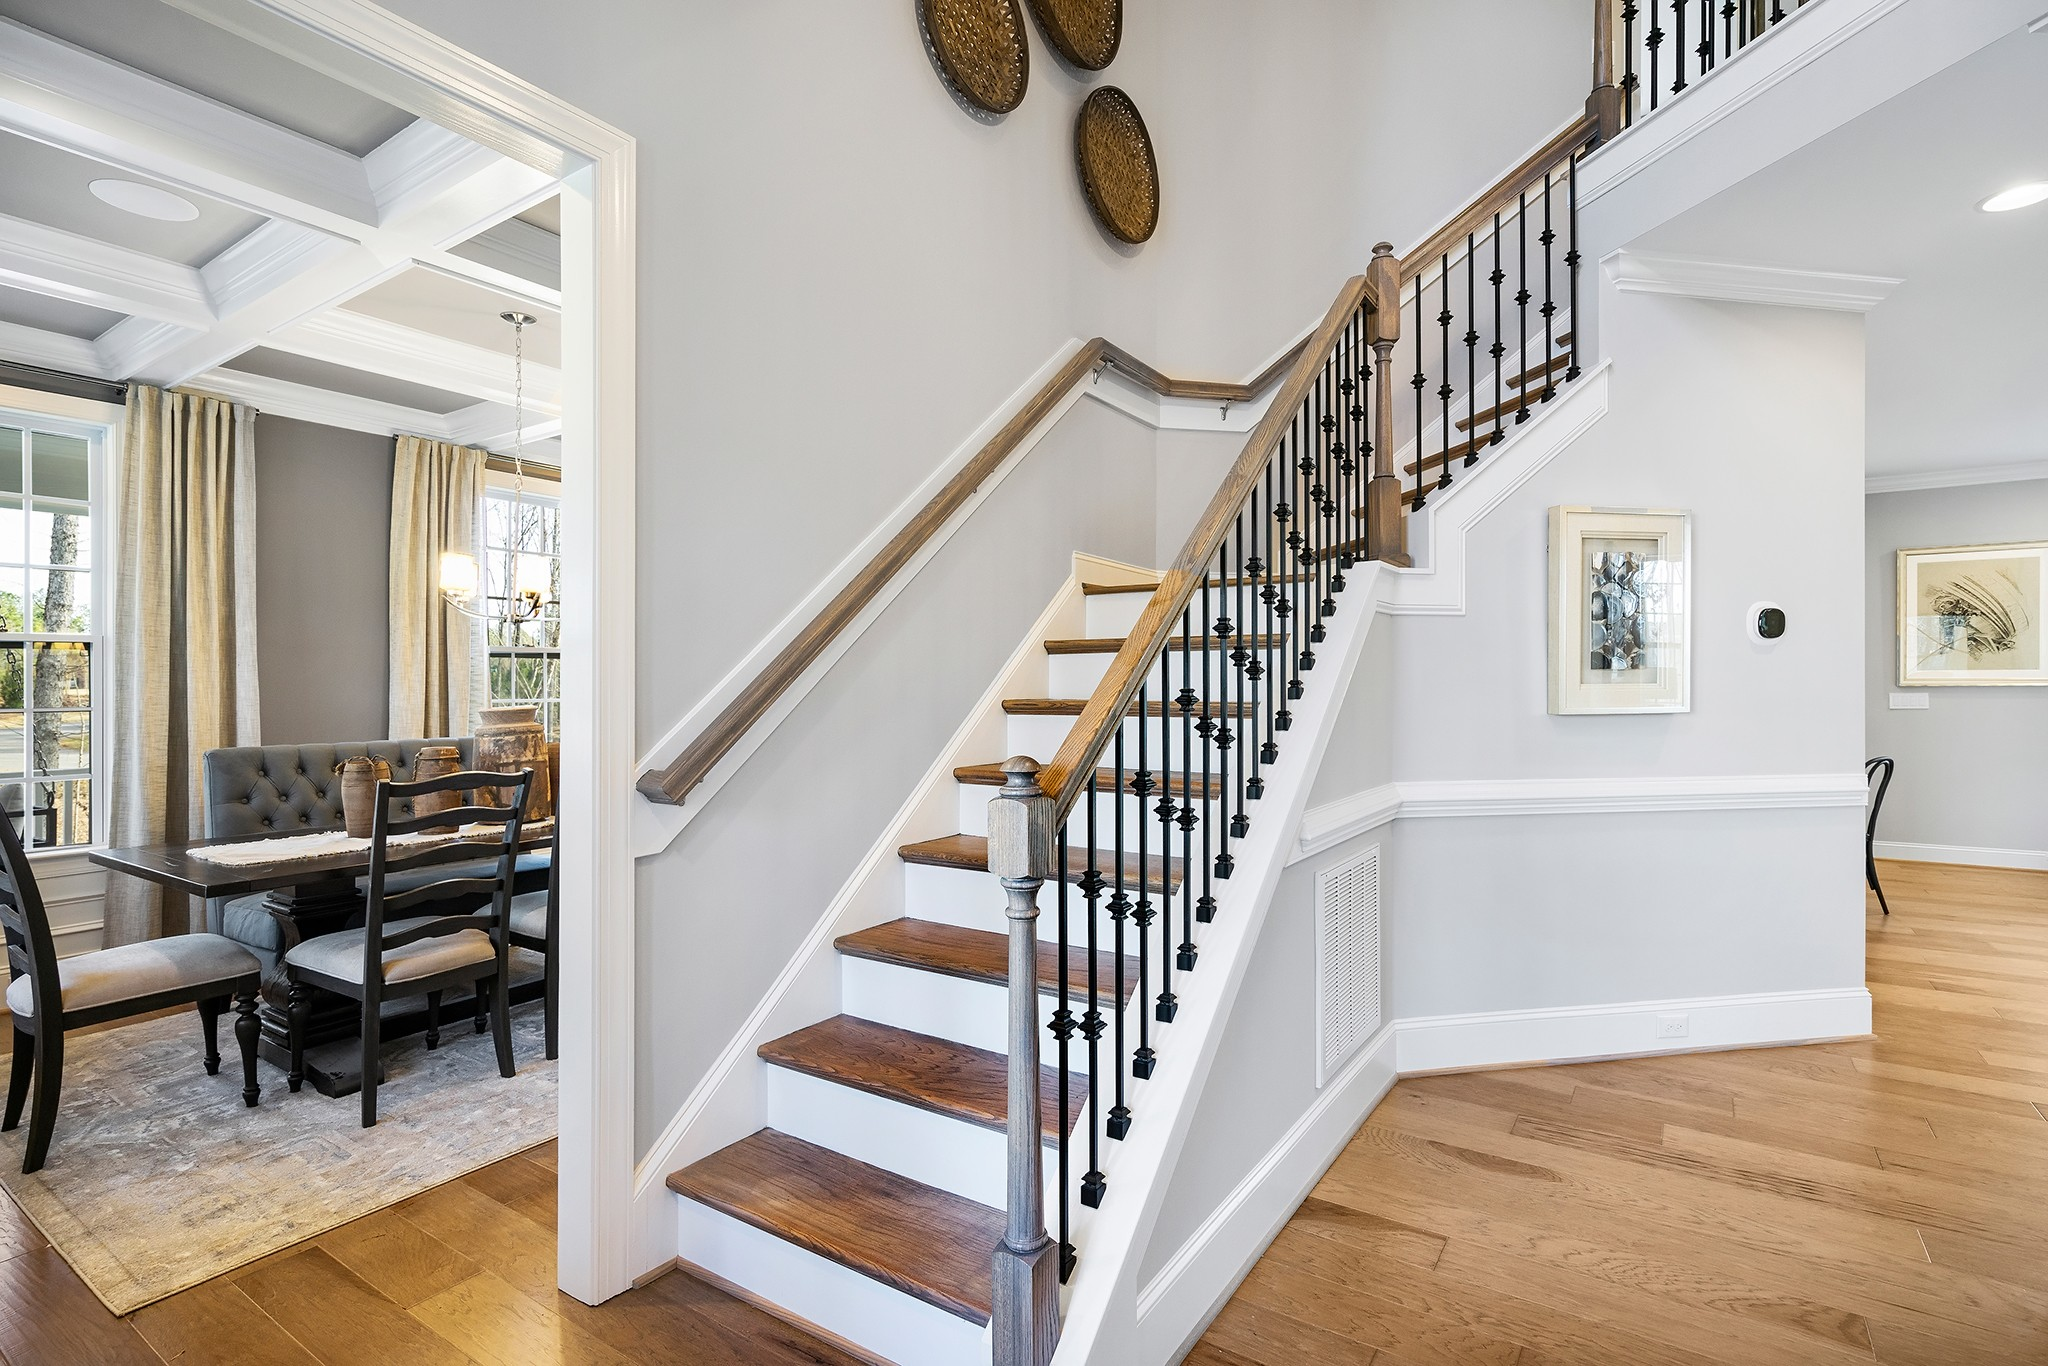 Ballentine Place, The Edenton Model, Royal Oaks a Division of Mattamy Homes, Two Story Foyer